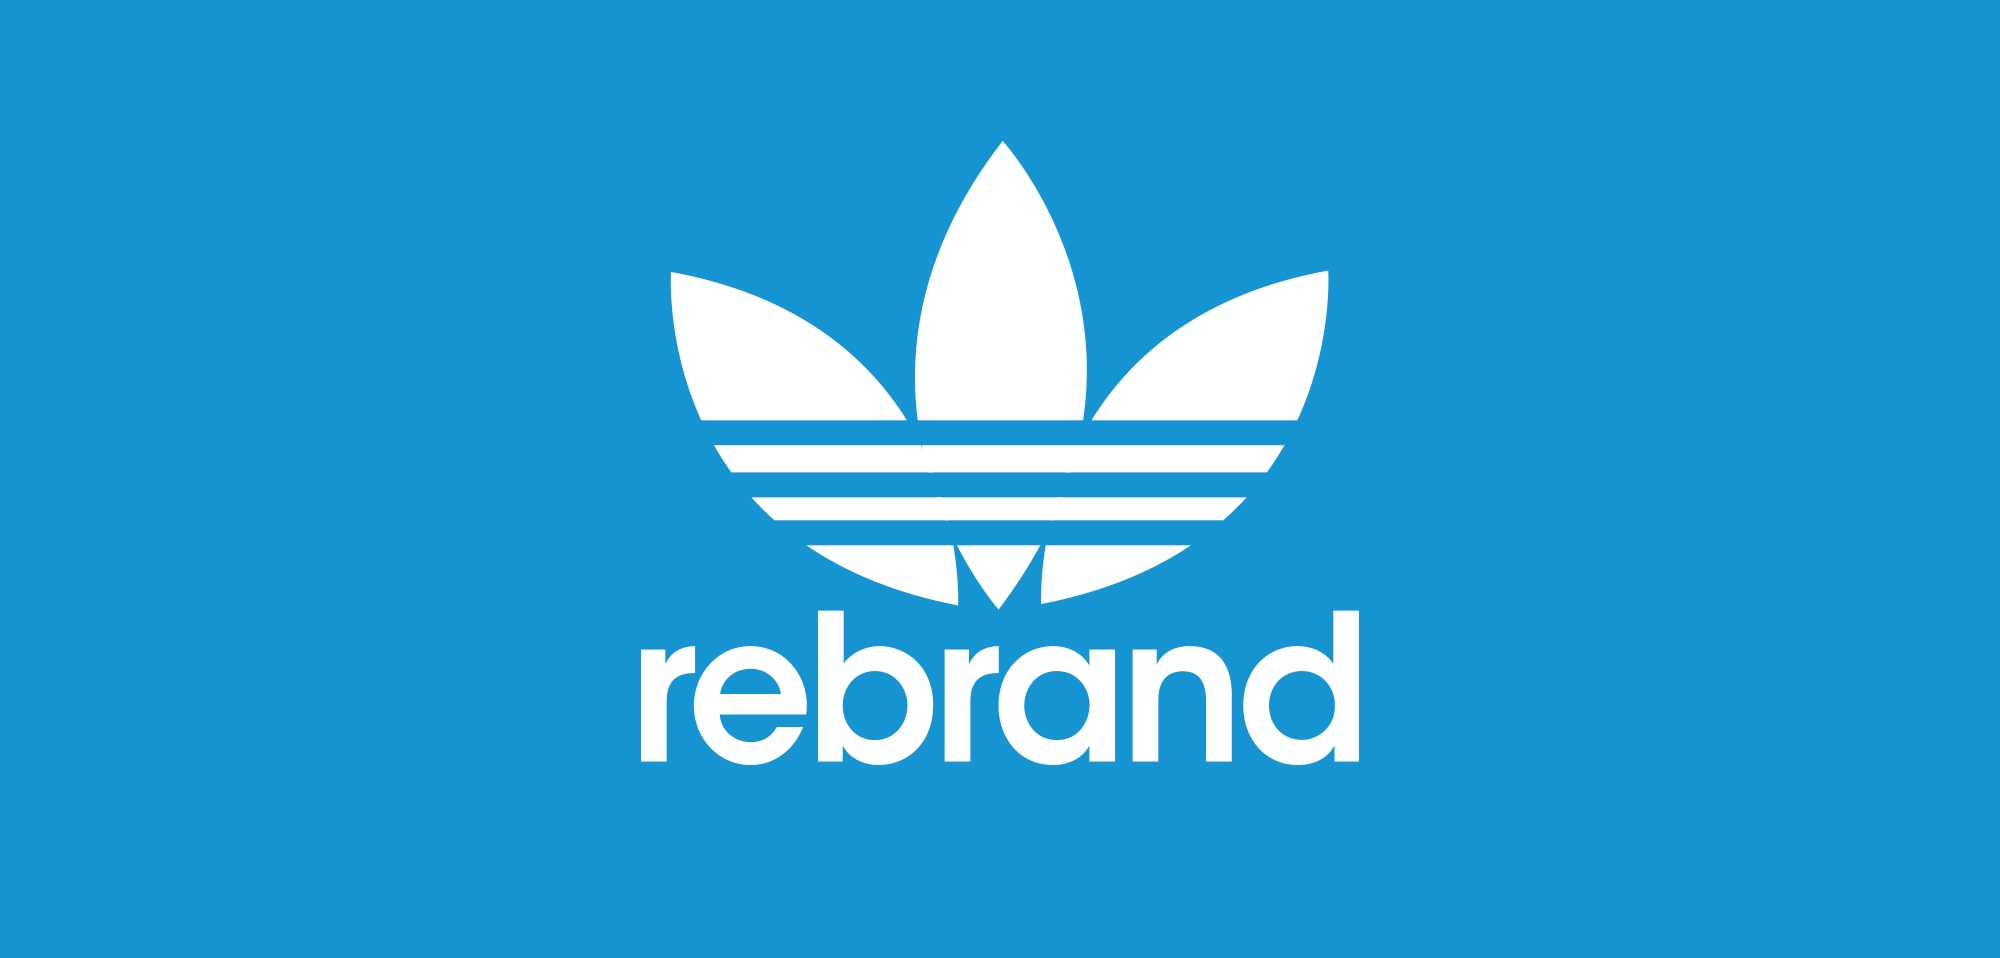 Why Rebrand a Company: 5 Questions to Ask Yourself